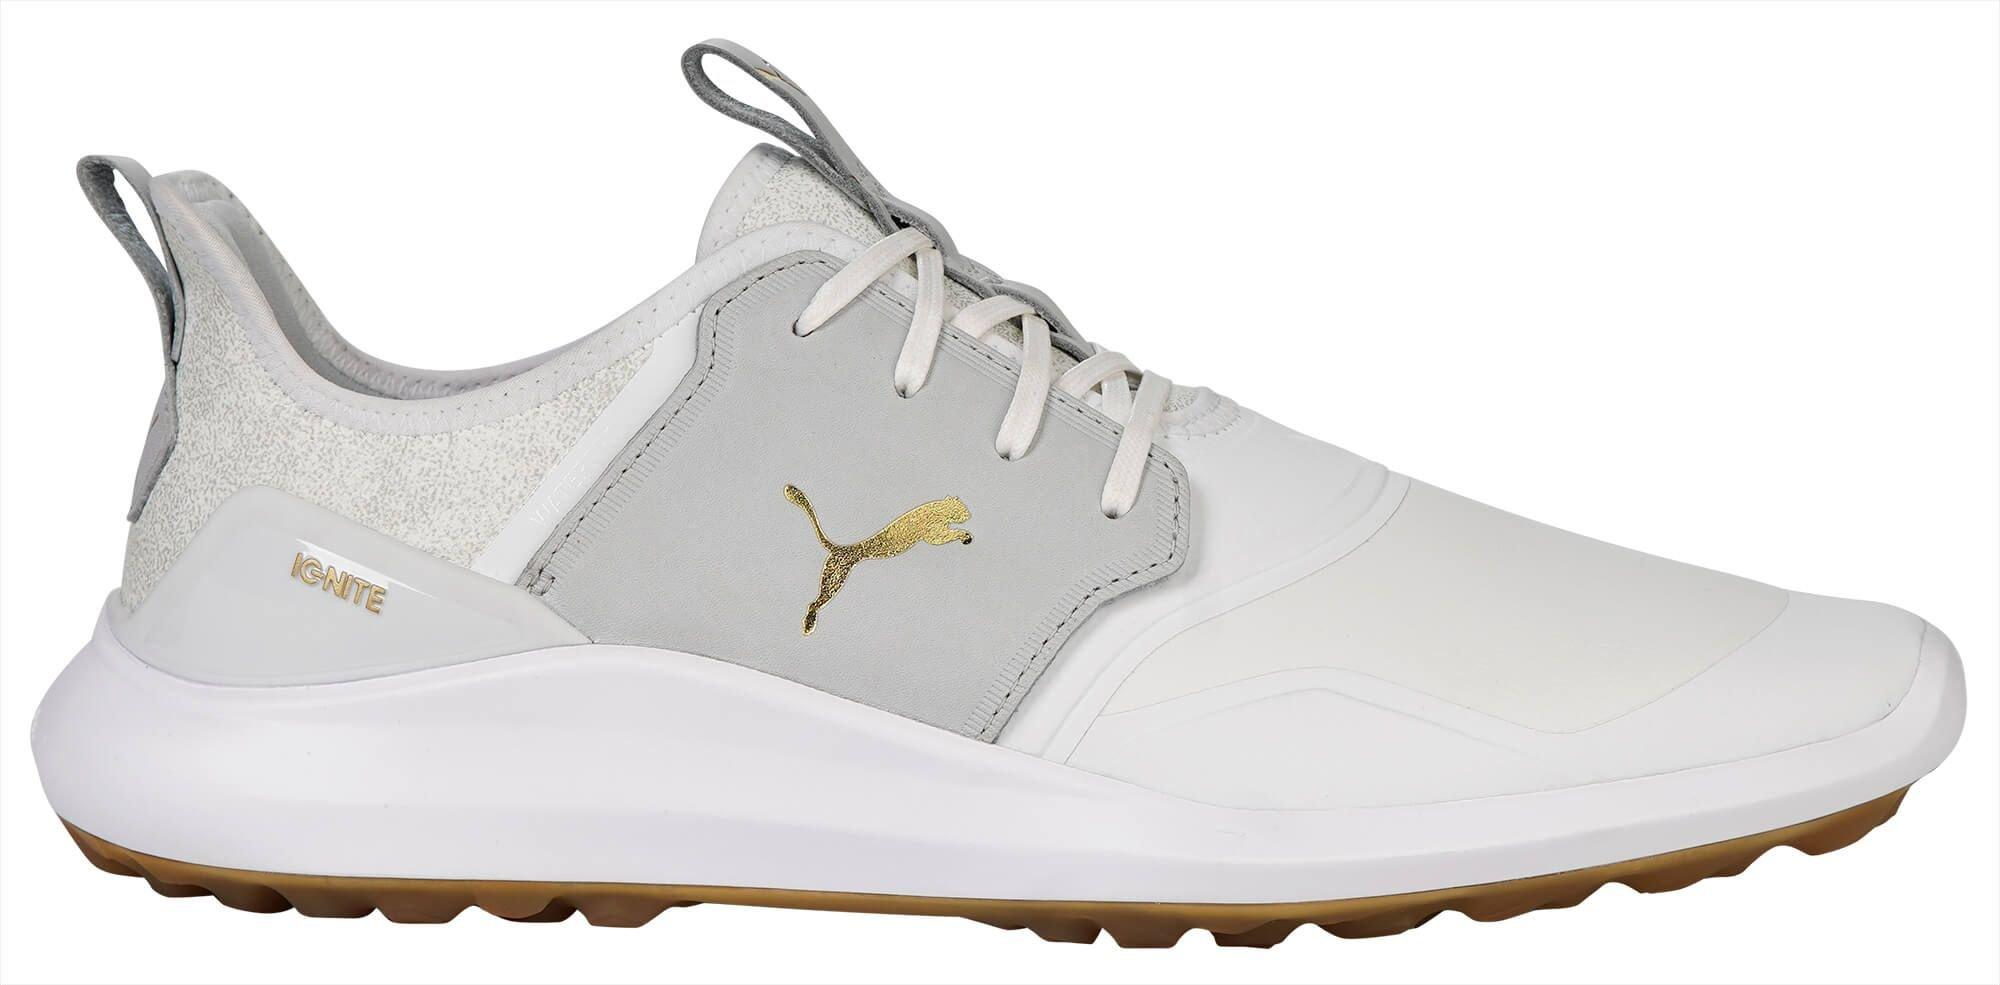 Puma Ignite Nxt Crafted Golf Shoes 2020 White High Rise Team Gold Carl S Golfland